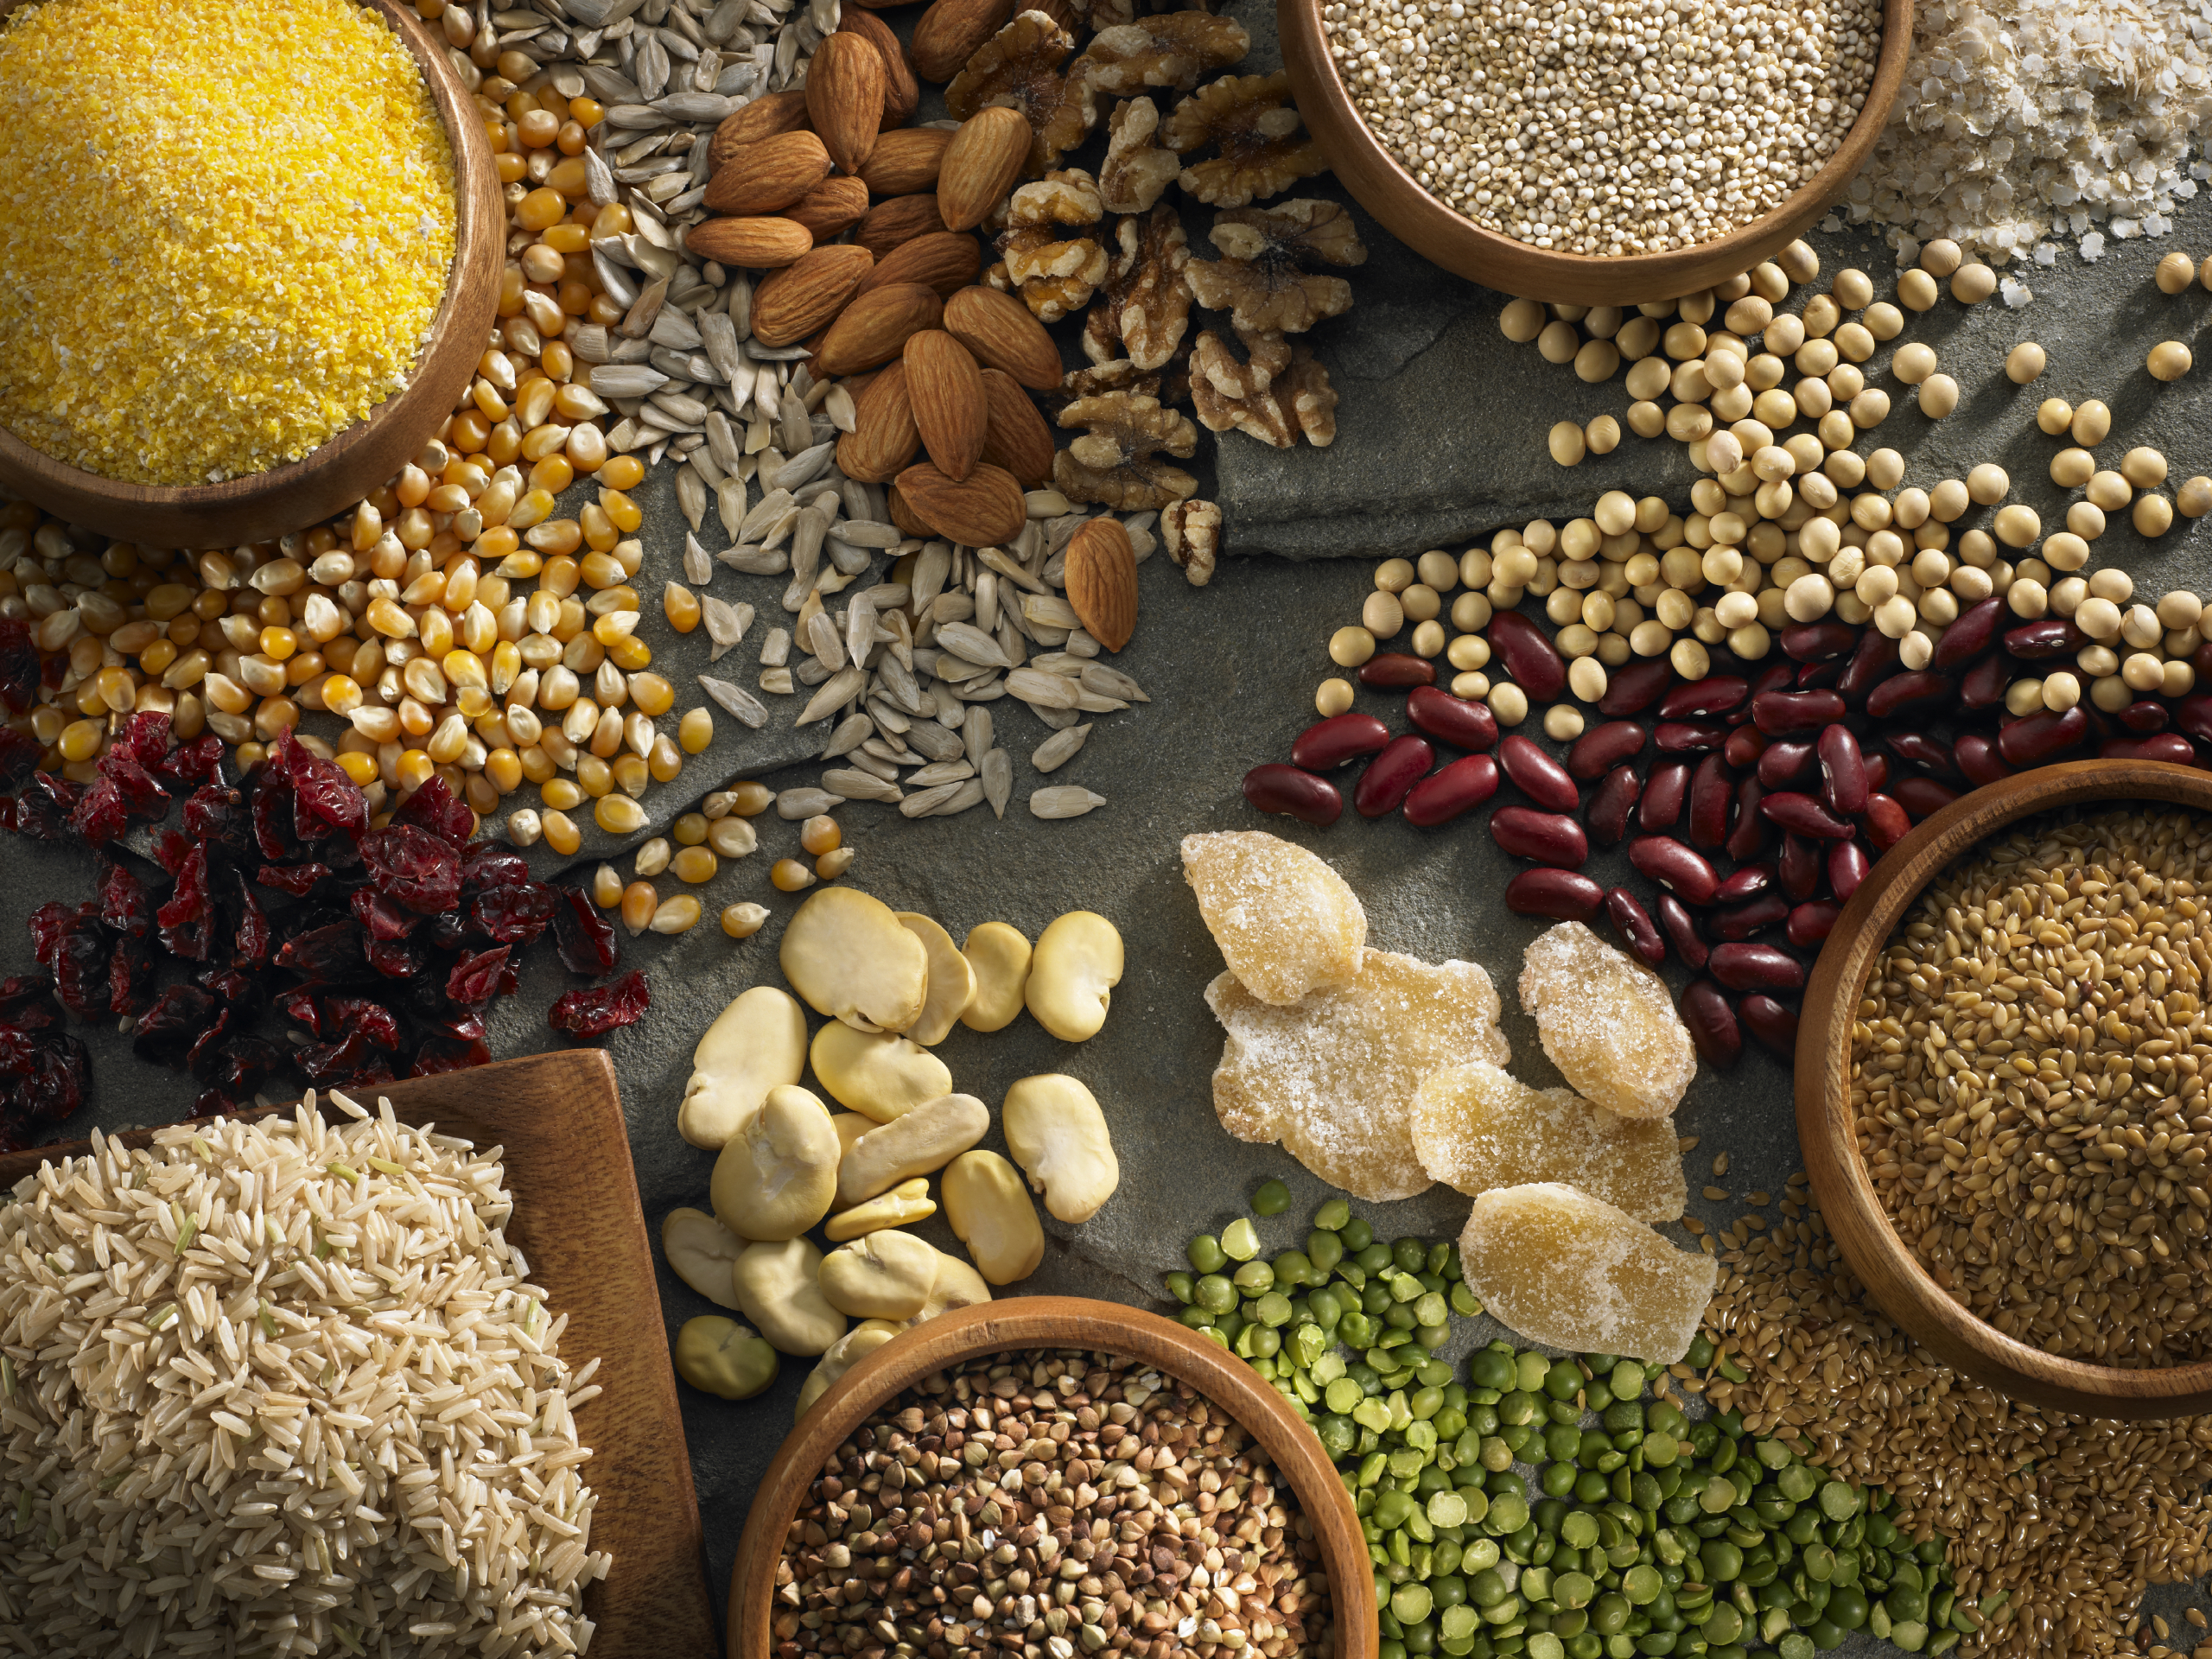 Assorted grains, beans, and seeds